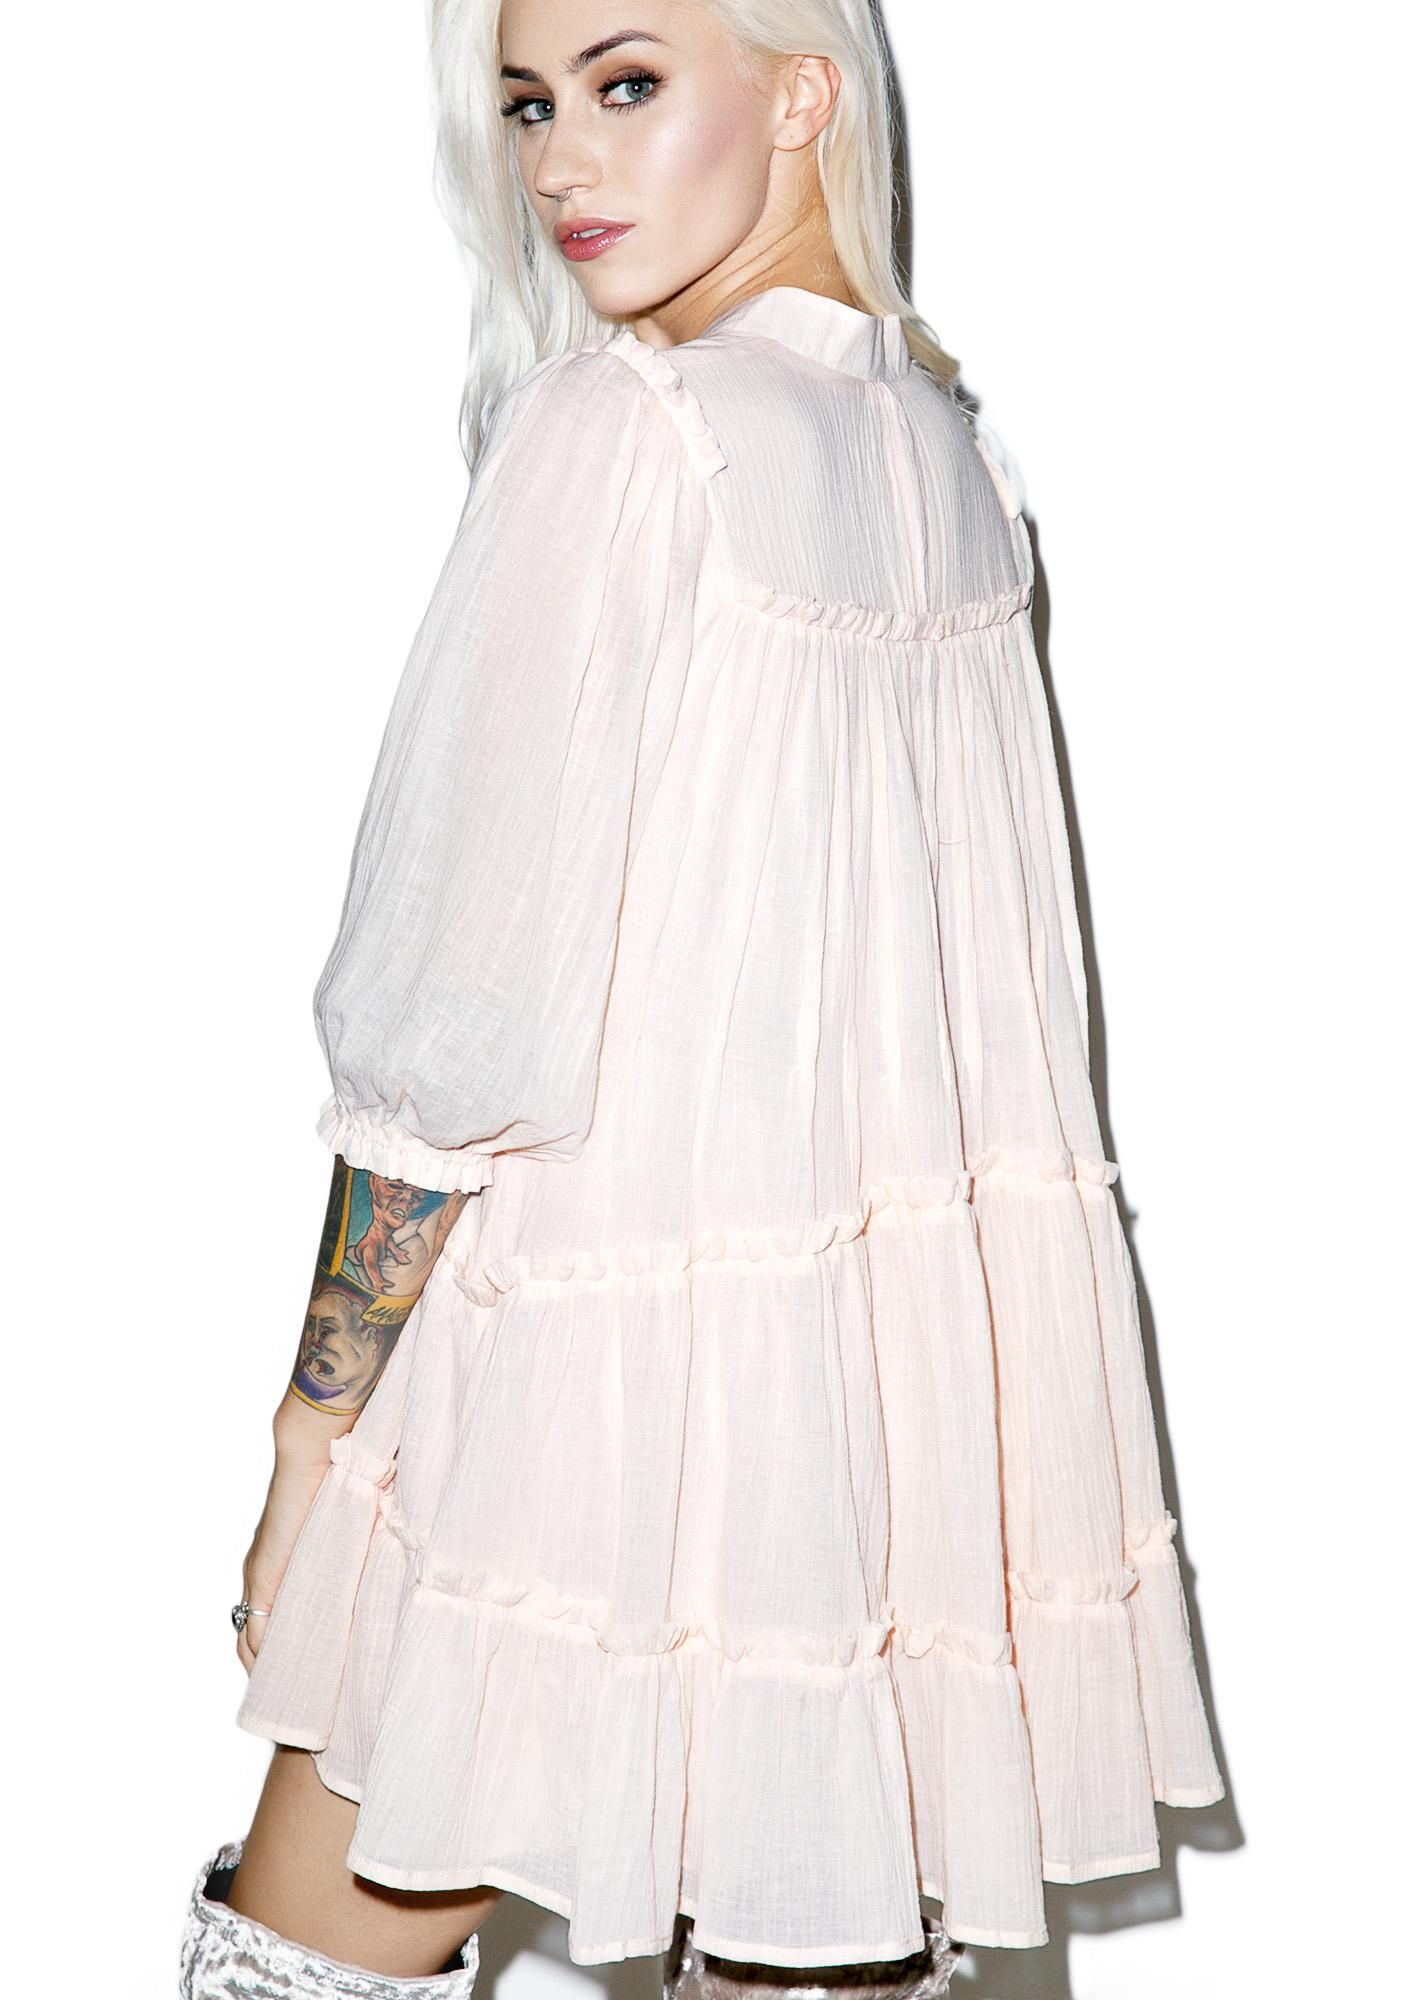 Enchanted Poet Swing Dress